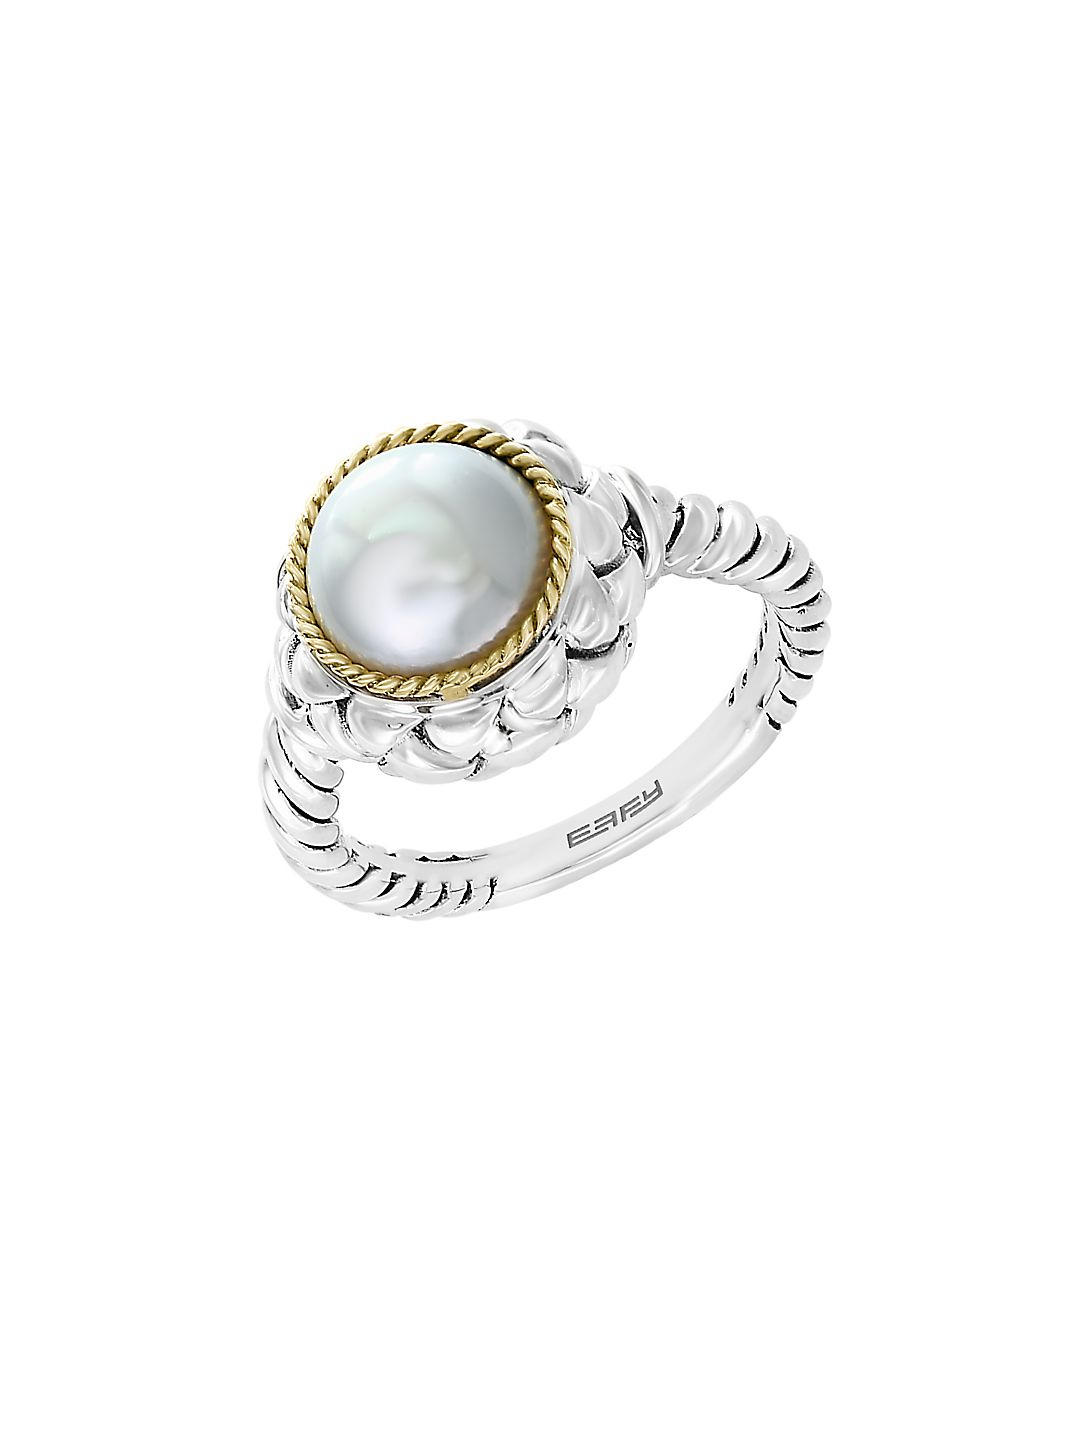 925 Sterling Silver, 18K Yellow Gold & 9mm Round Freshwater Pearl Ring